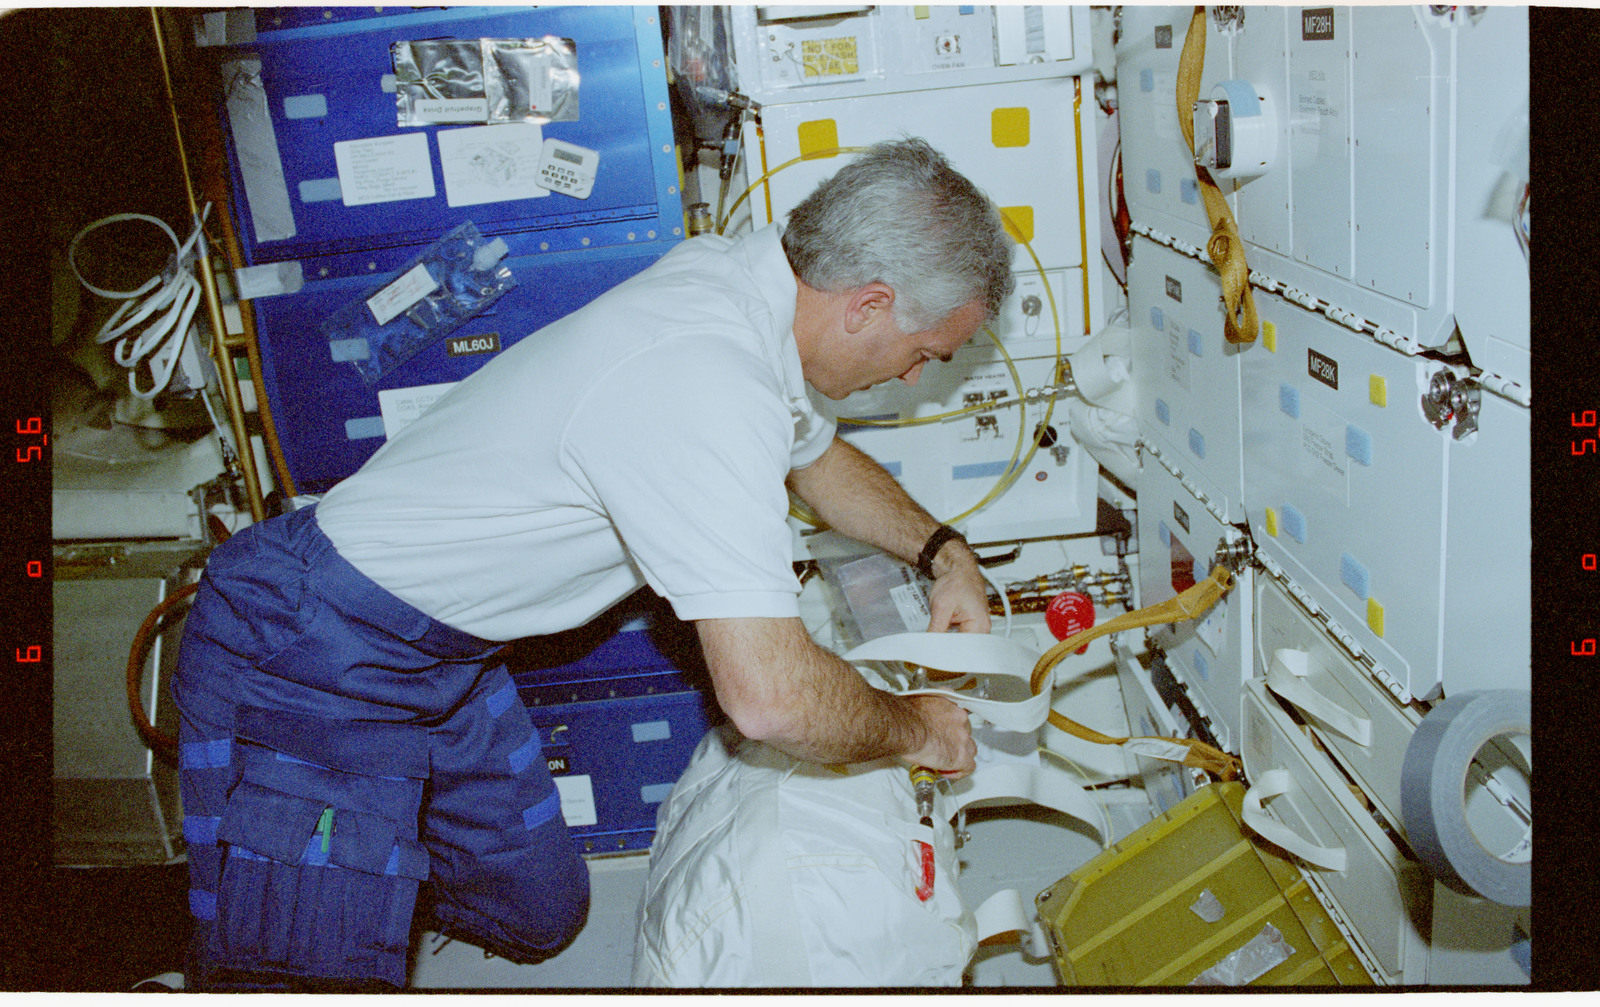 STS076-347-006 - STS-076 - Michael ``Rich`` Clifford fills a water transfer bag